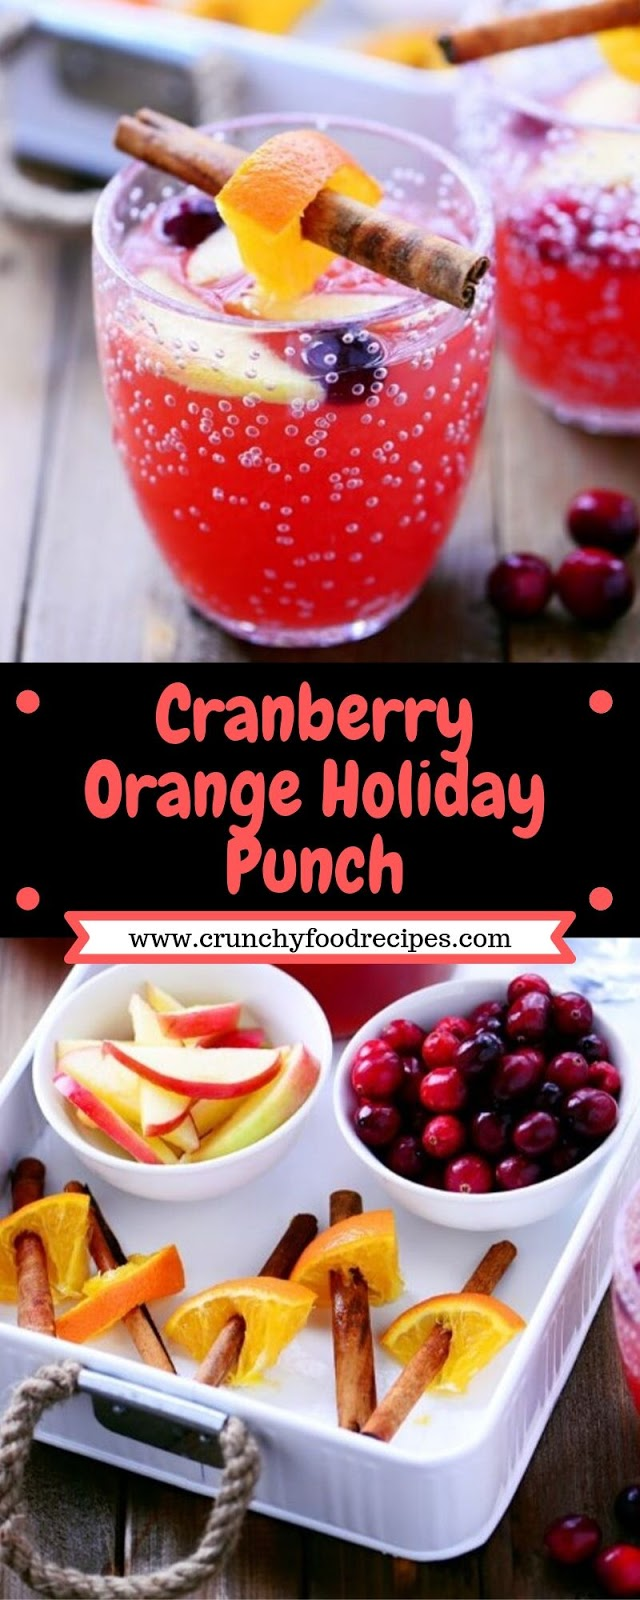 Cranberry Orange Holiday Punch